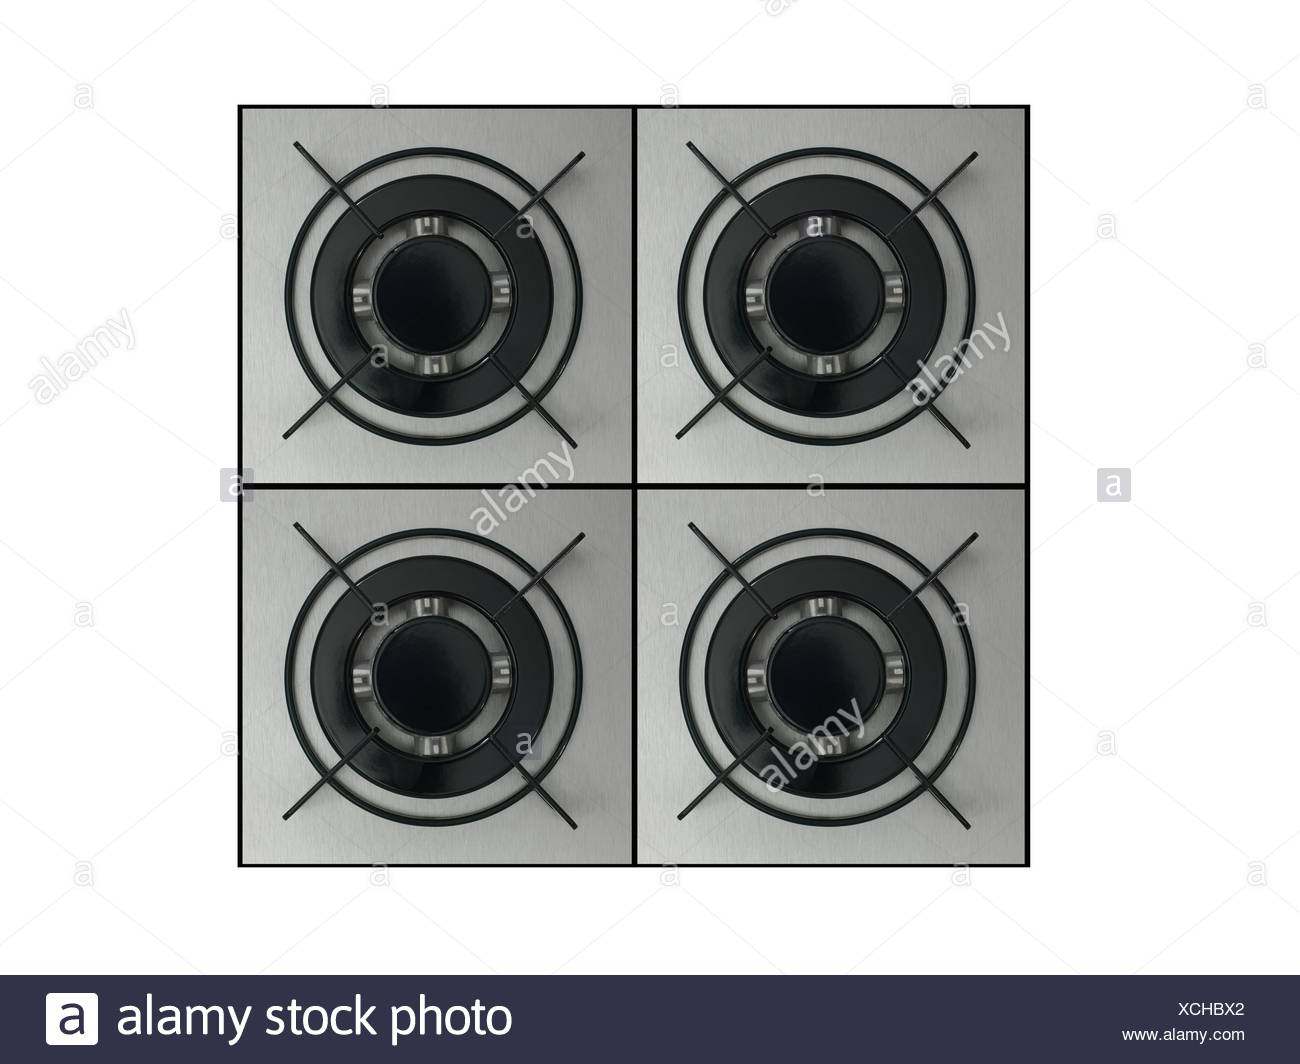 Gas burners isolated against a white background - Stock Image